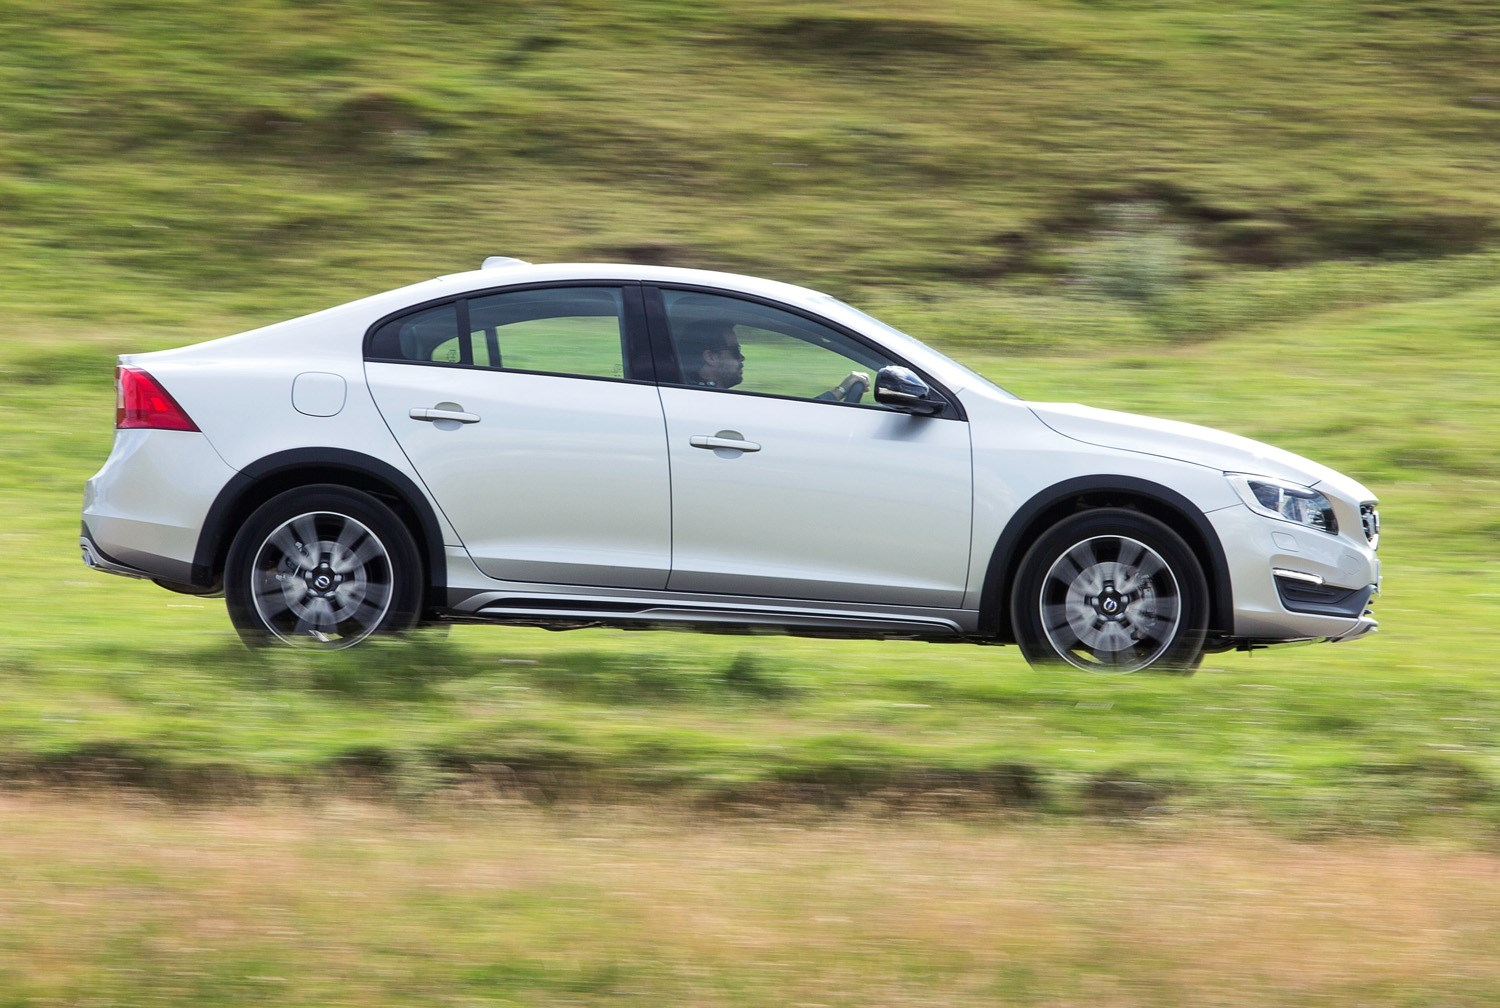 Volvo v60 cross country review 2015 parkers - View All Images Of The Volvo S60 Cross Country 15 16